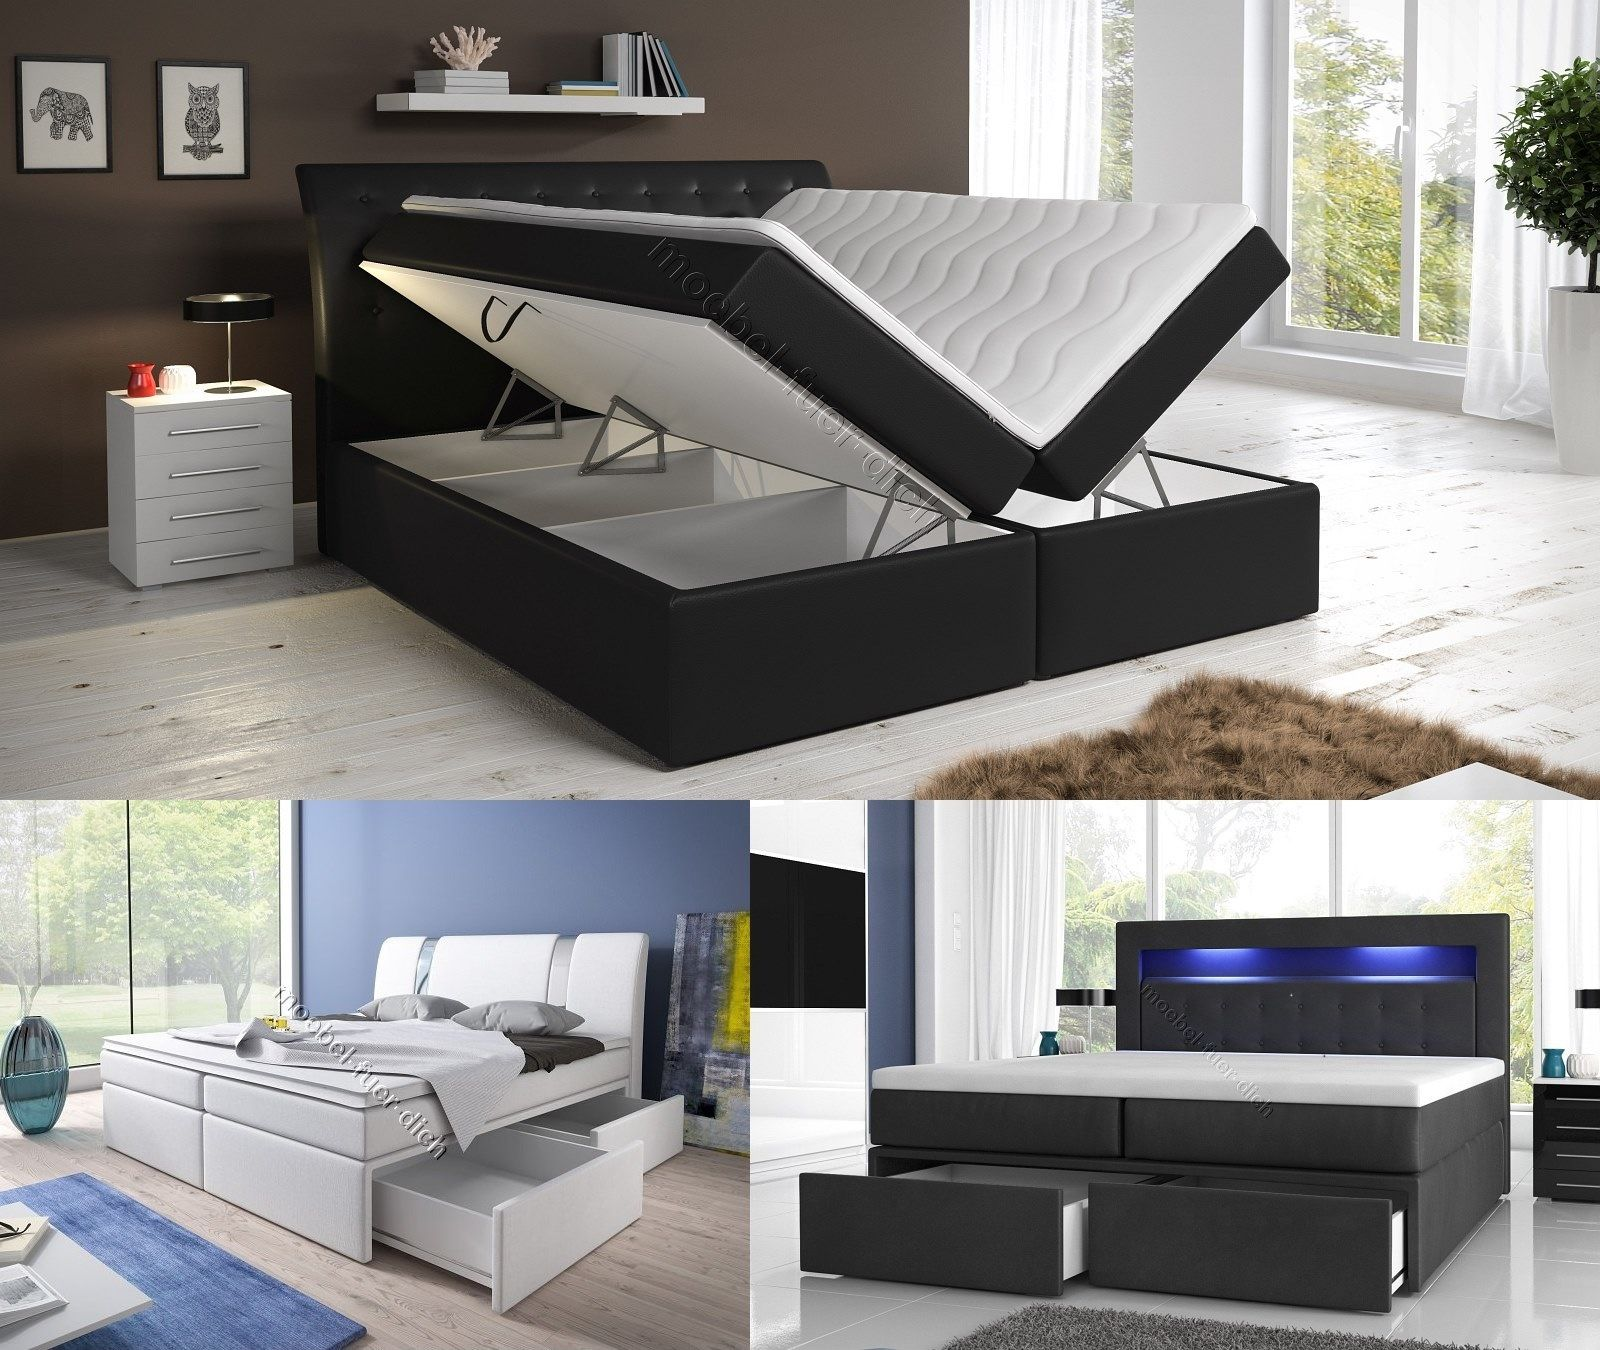 boxspringbett mit zwei bettkasten 140 160 oder 180 200. Black Bedroom Furniture Sets. Home Design Ideas